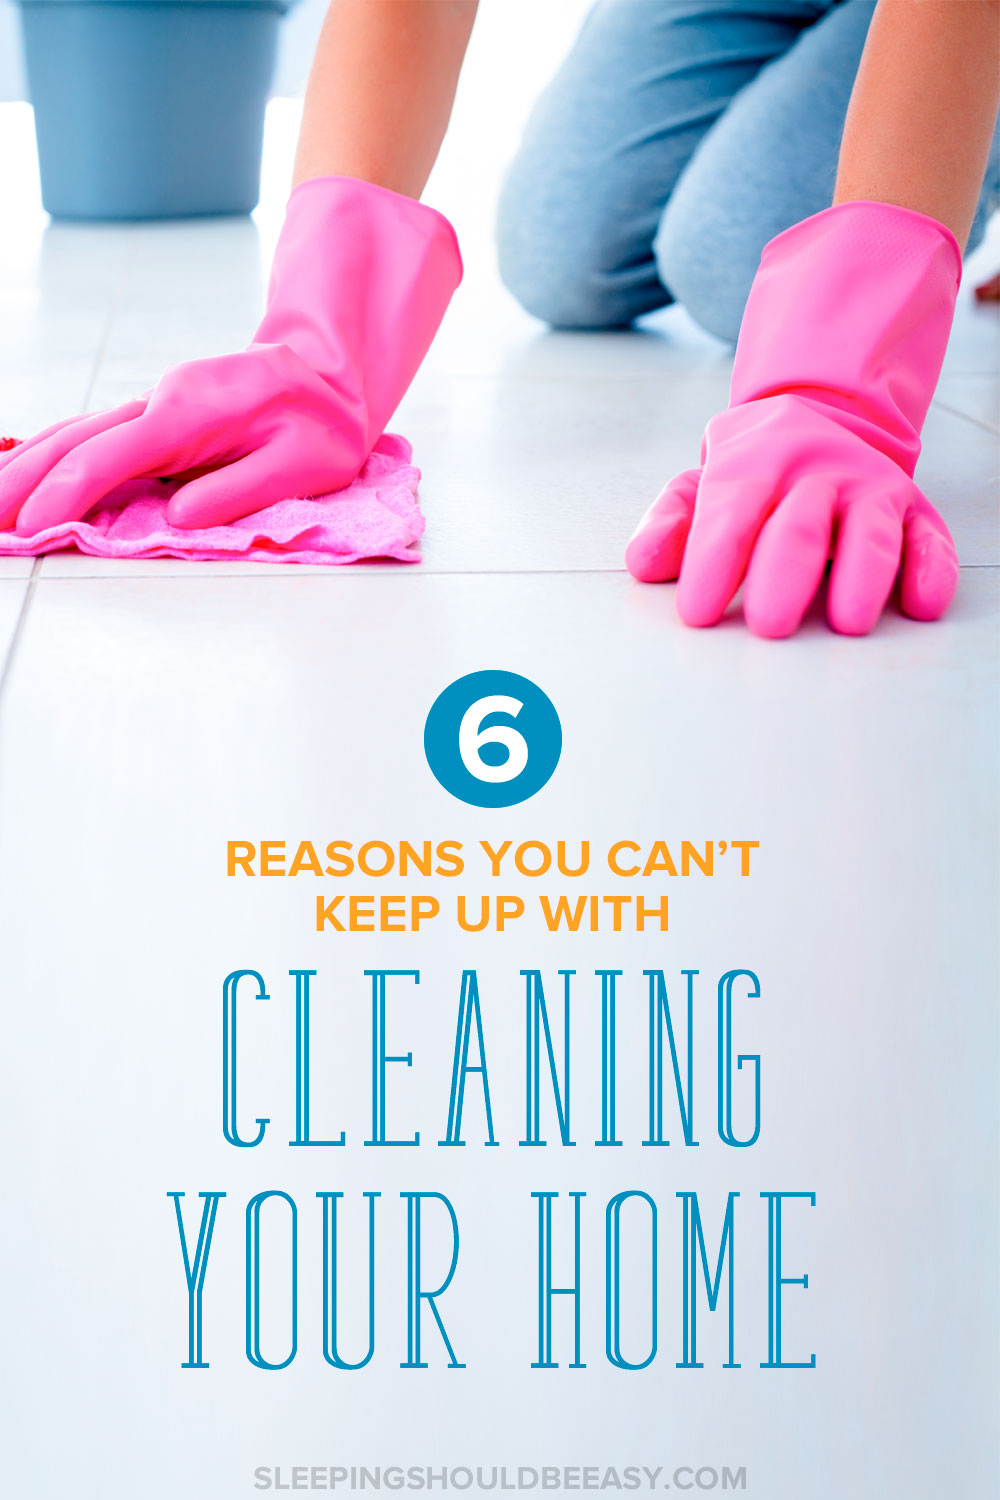 6 Reasons You Canu0027t Keep Up With Cleaning Your Home: Pair Of Pink